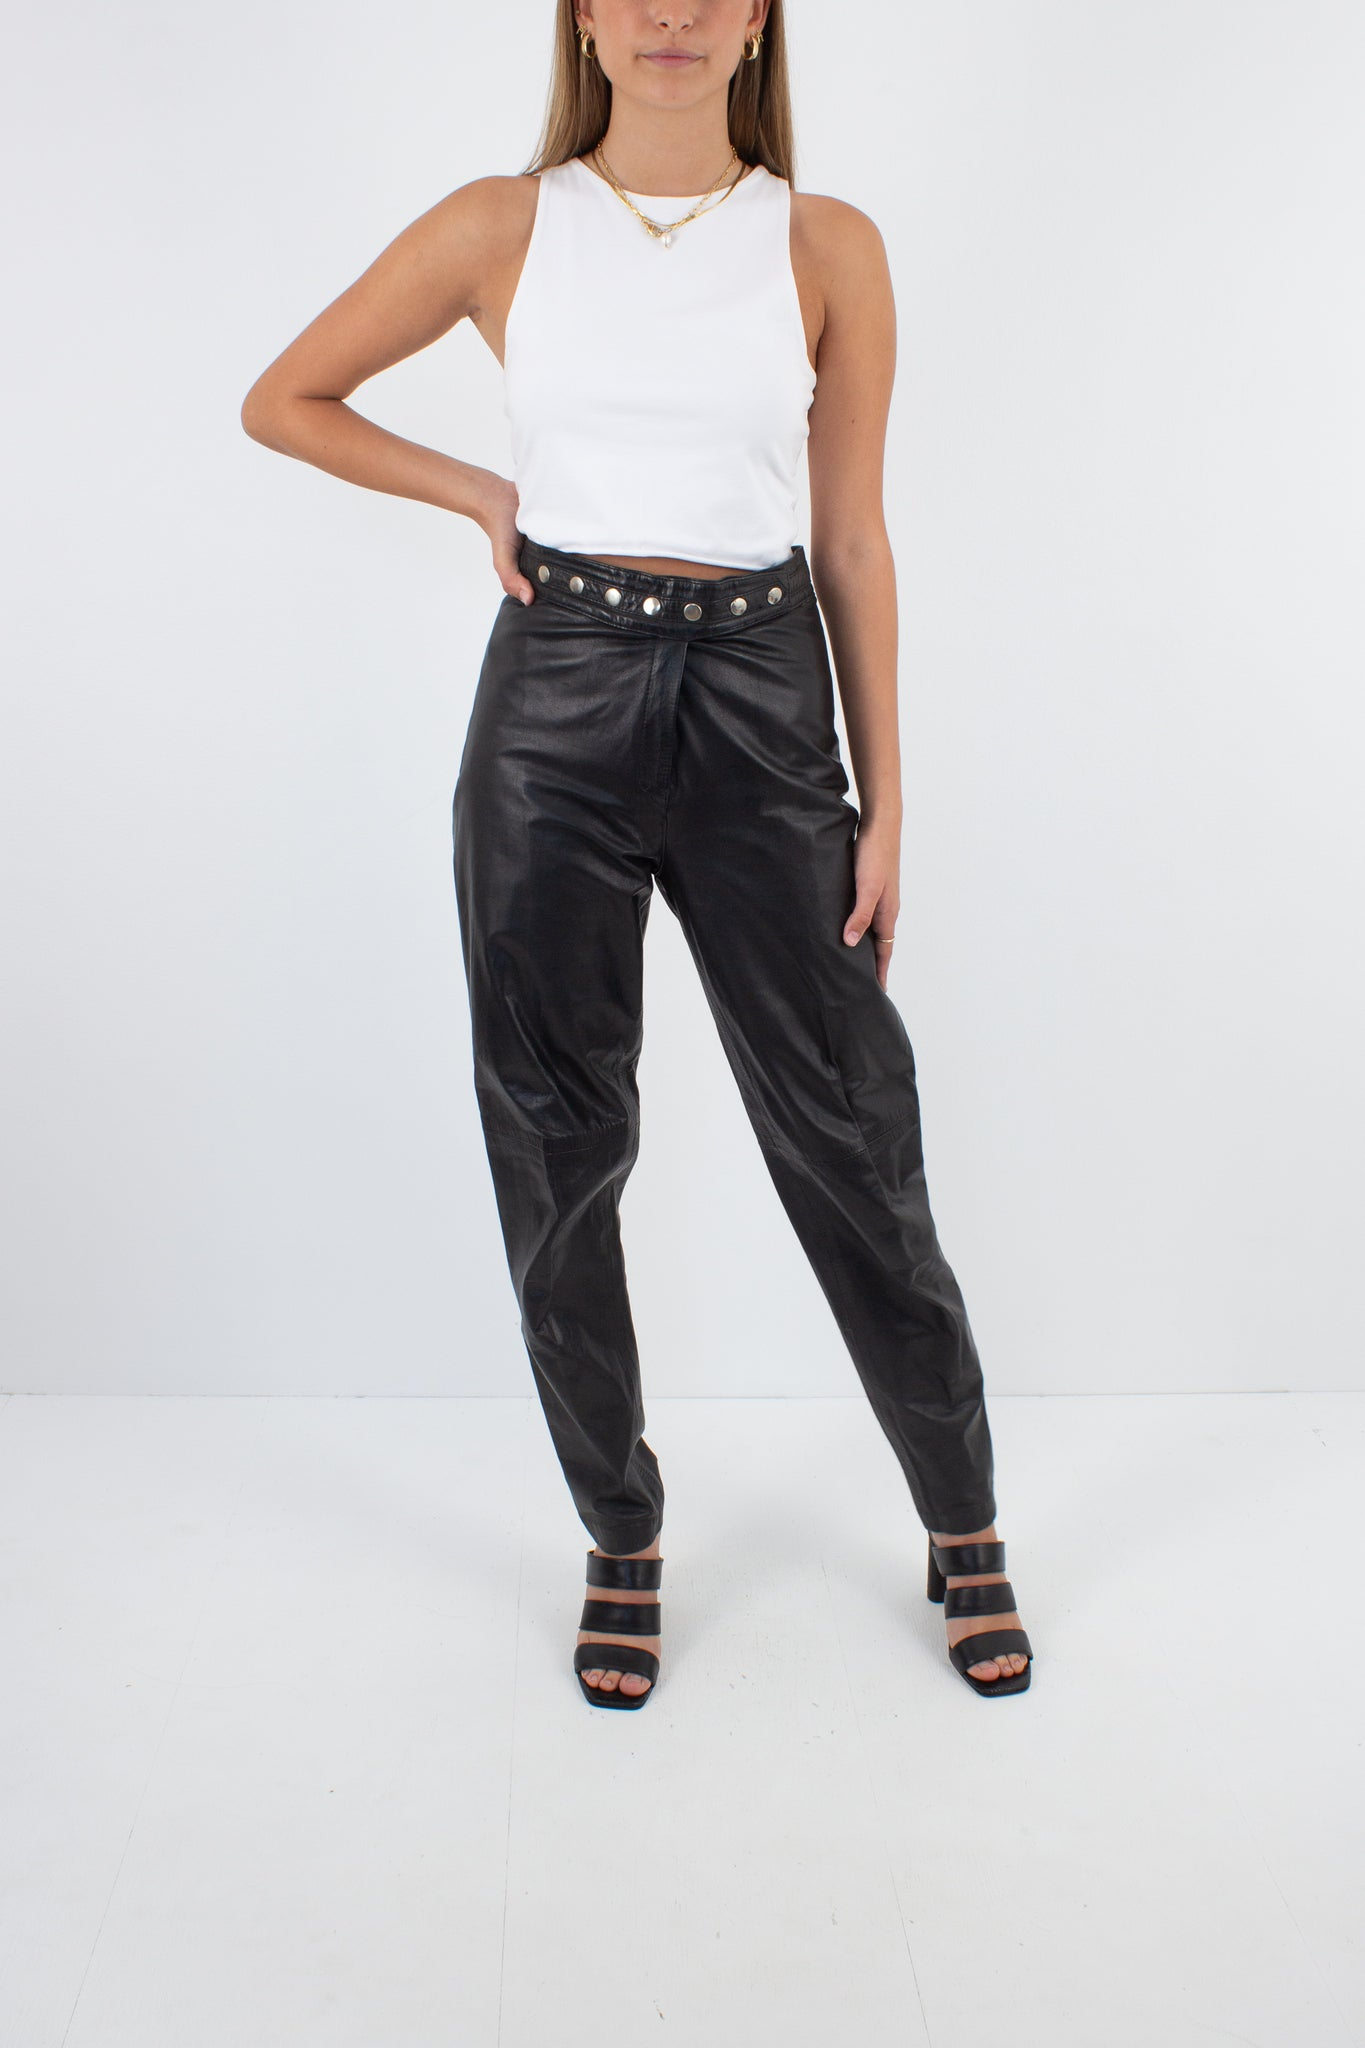 Black Leather High Waist Pants - Size S / 27""